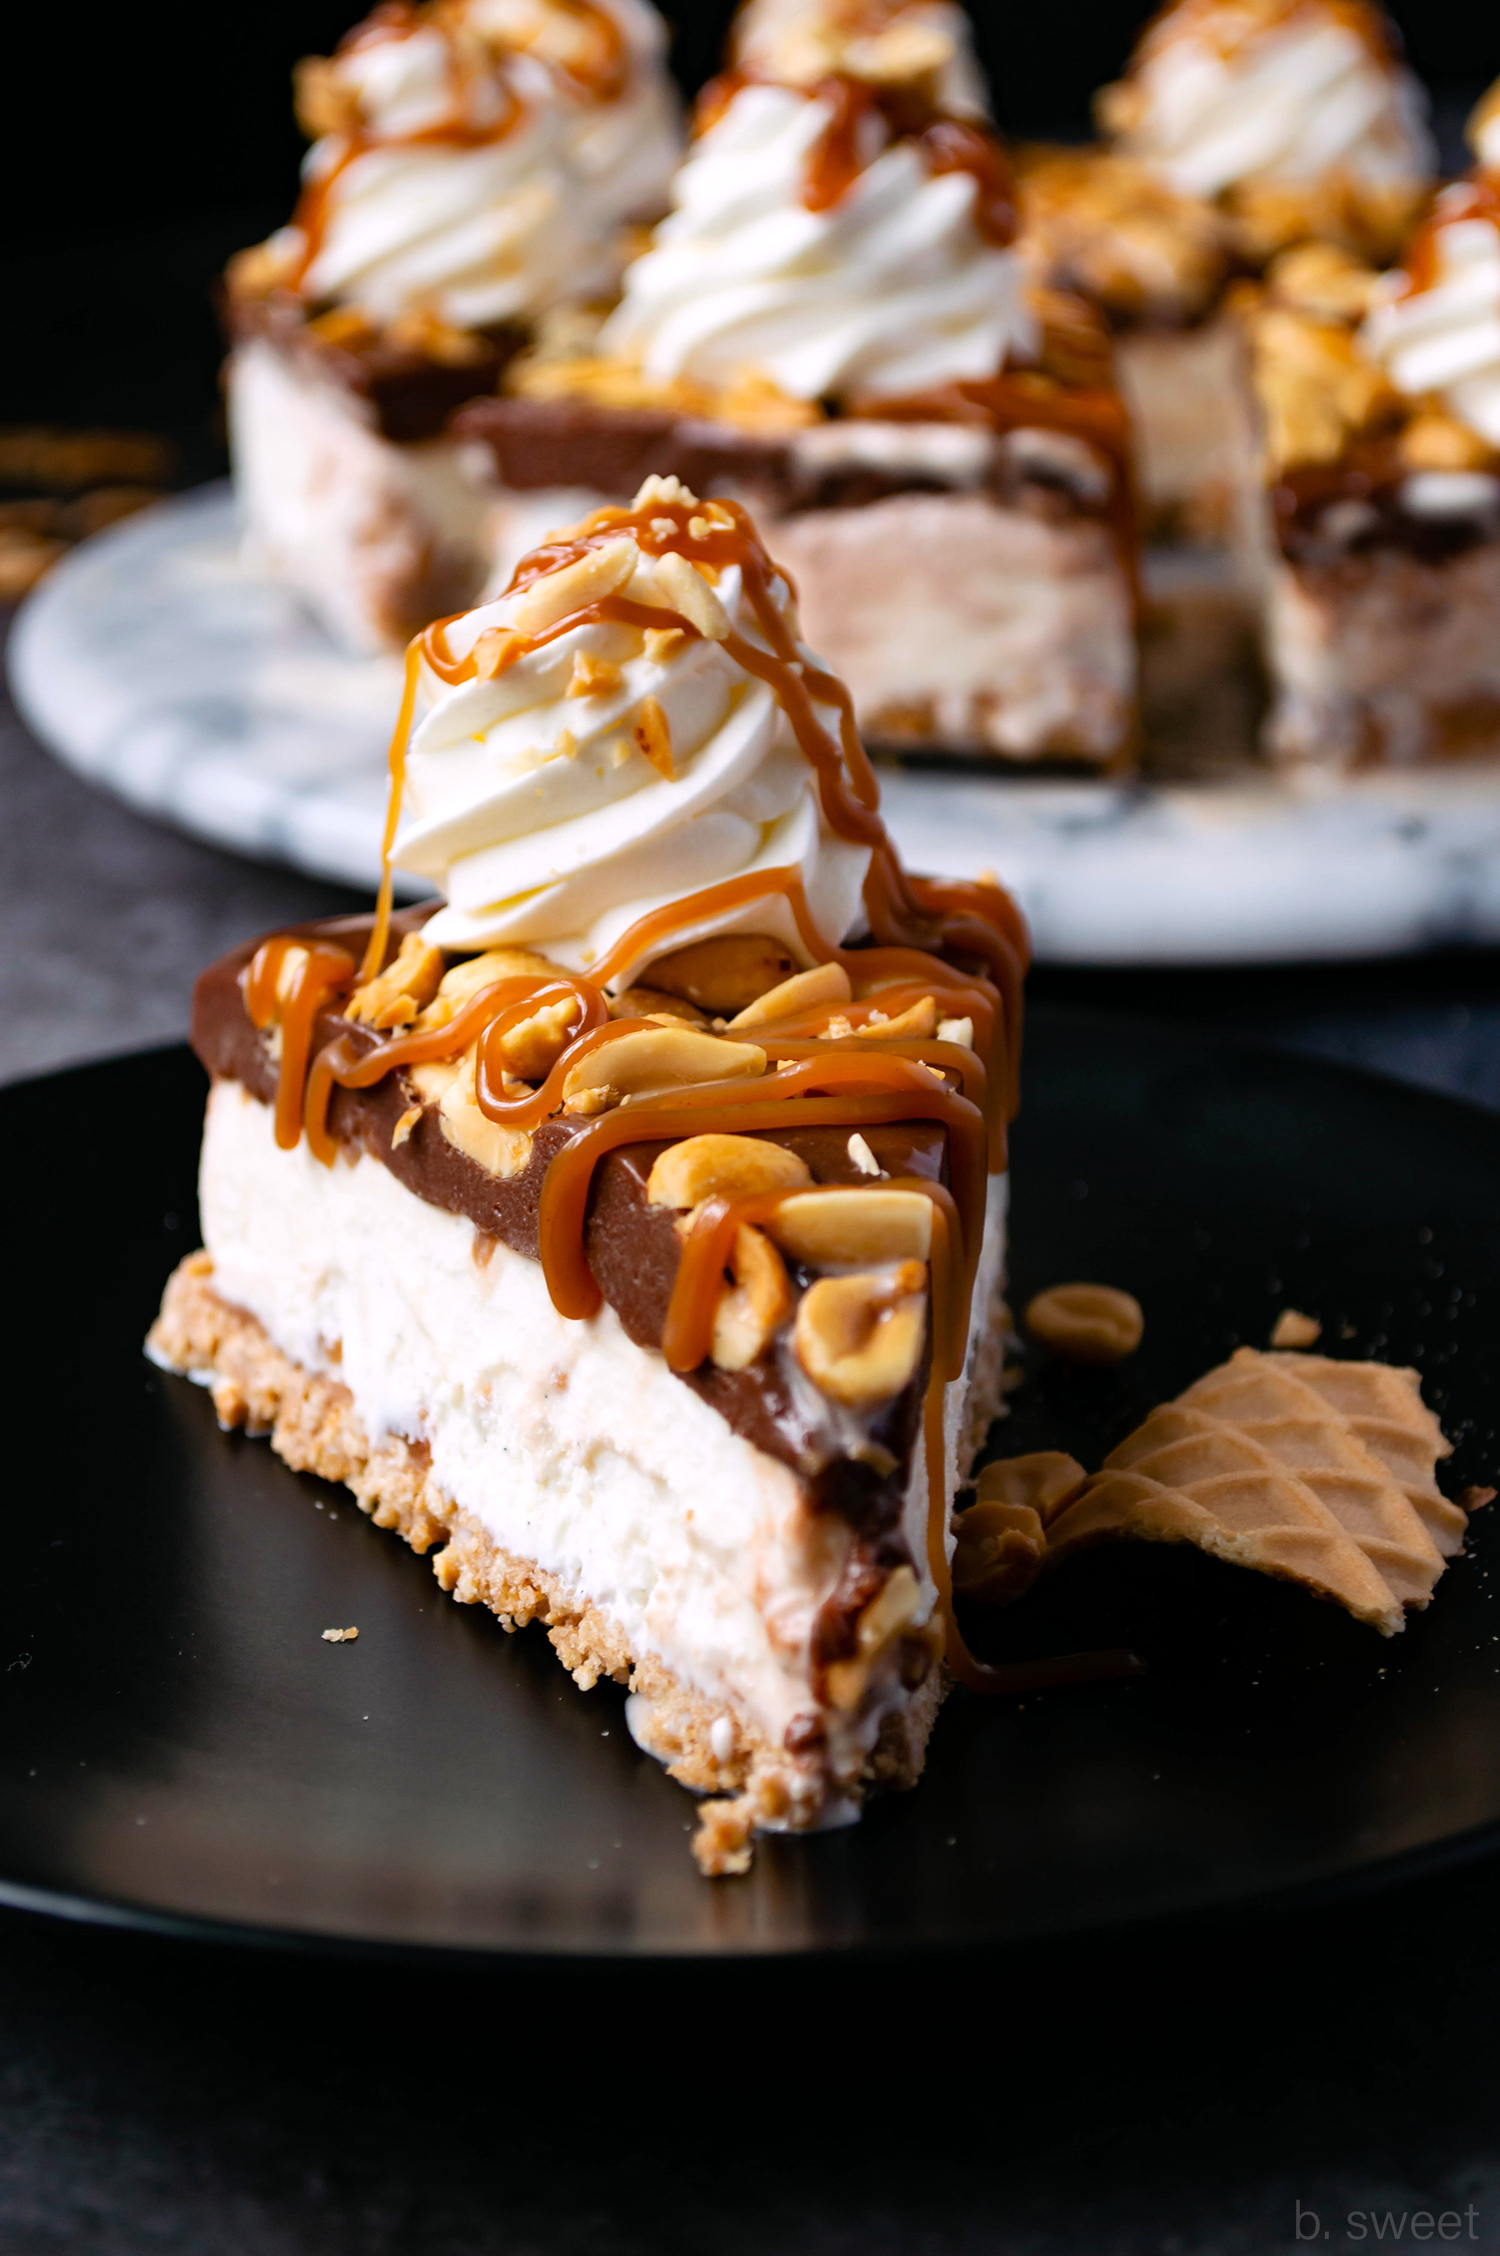 Hot Fudge Ice Cream Pie with Salted Peanut Butter Caramel  - b. sweet